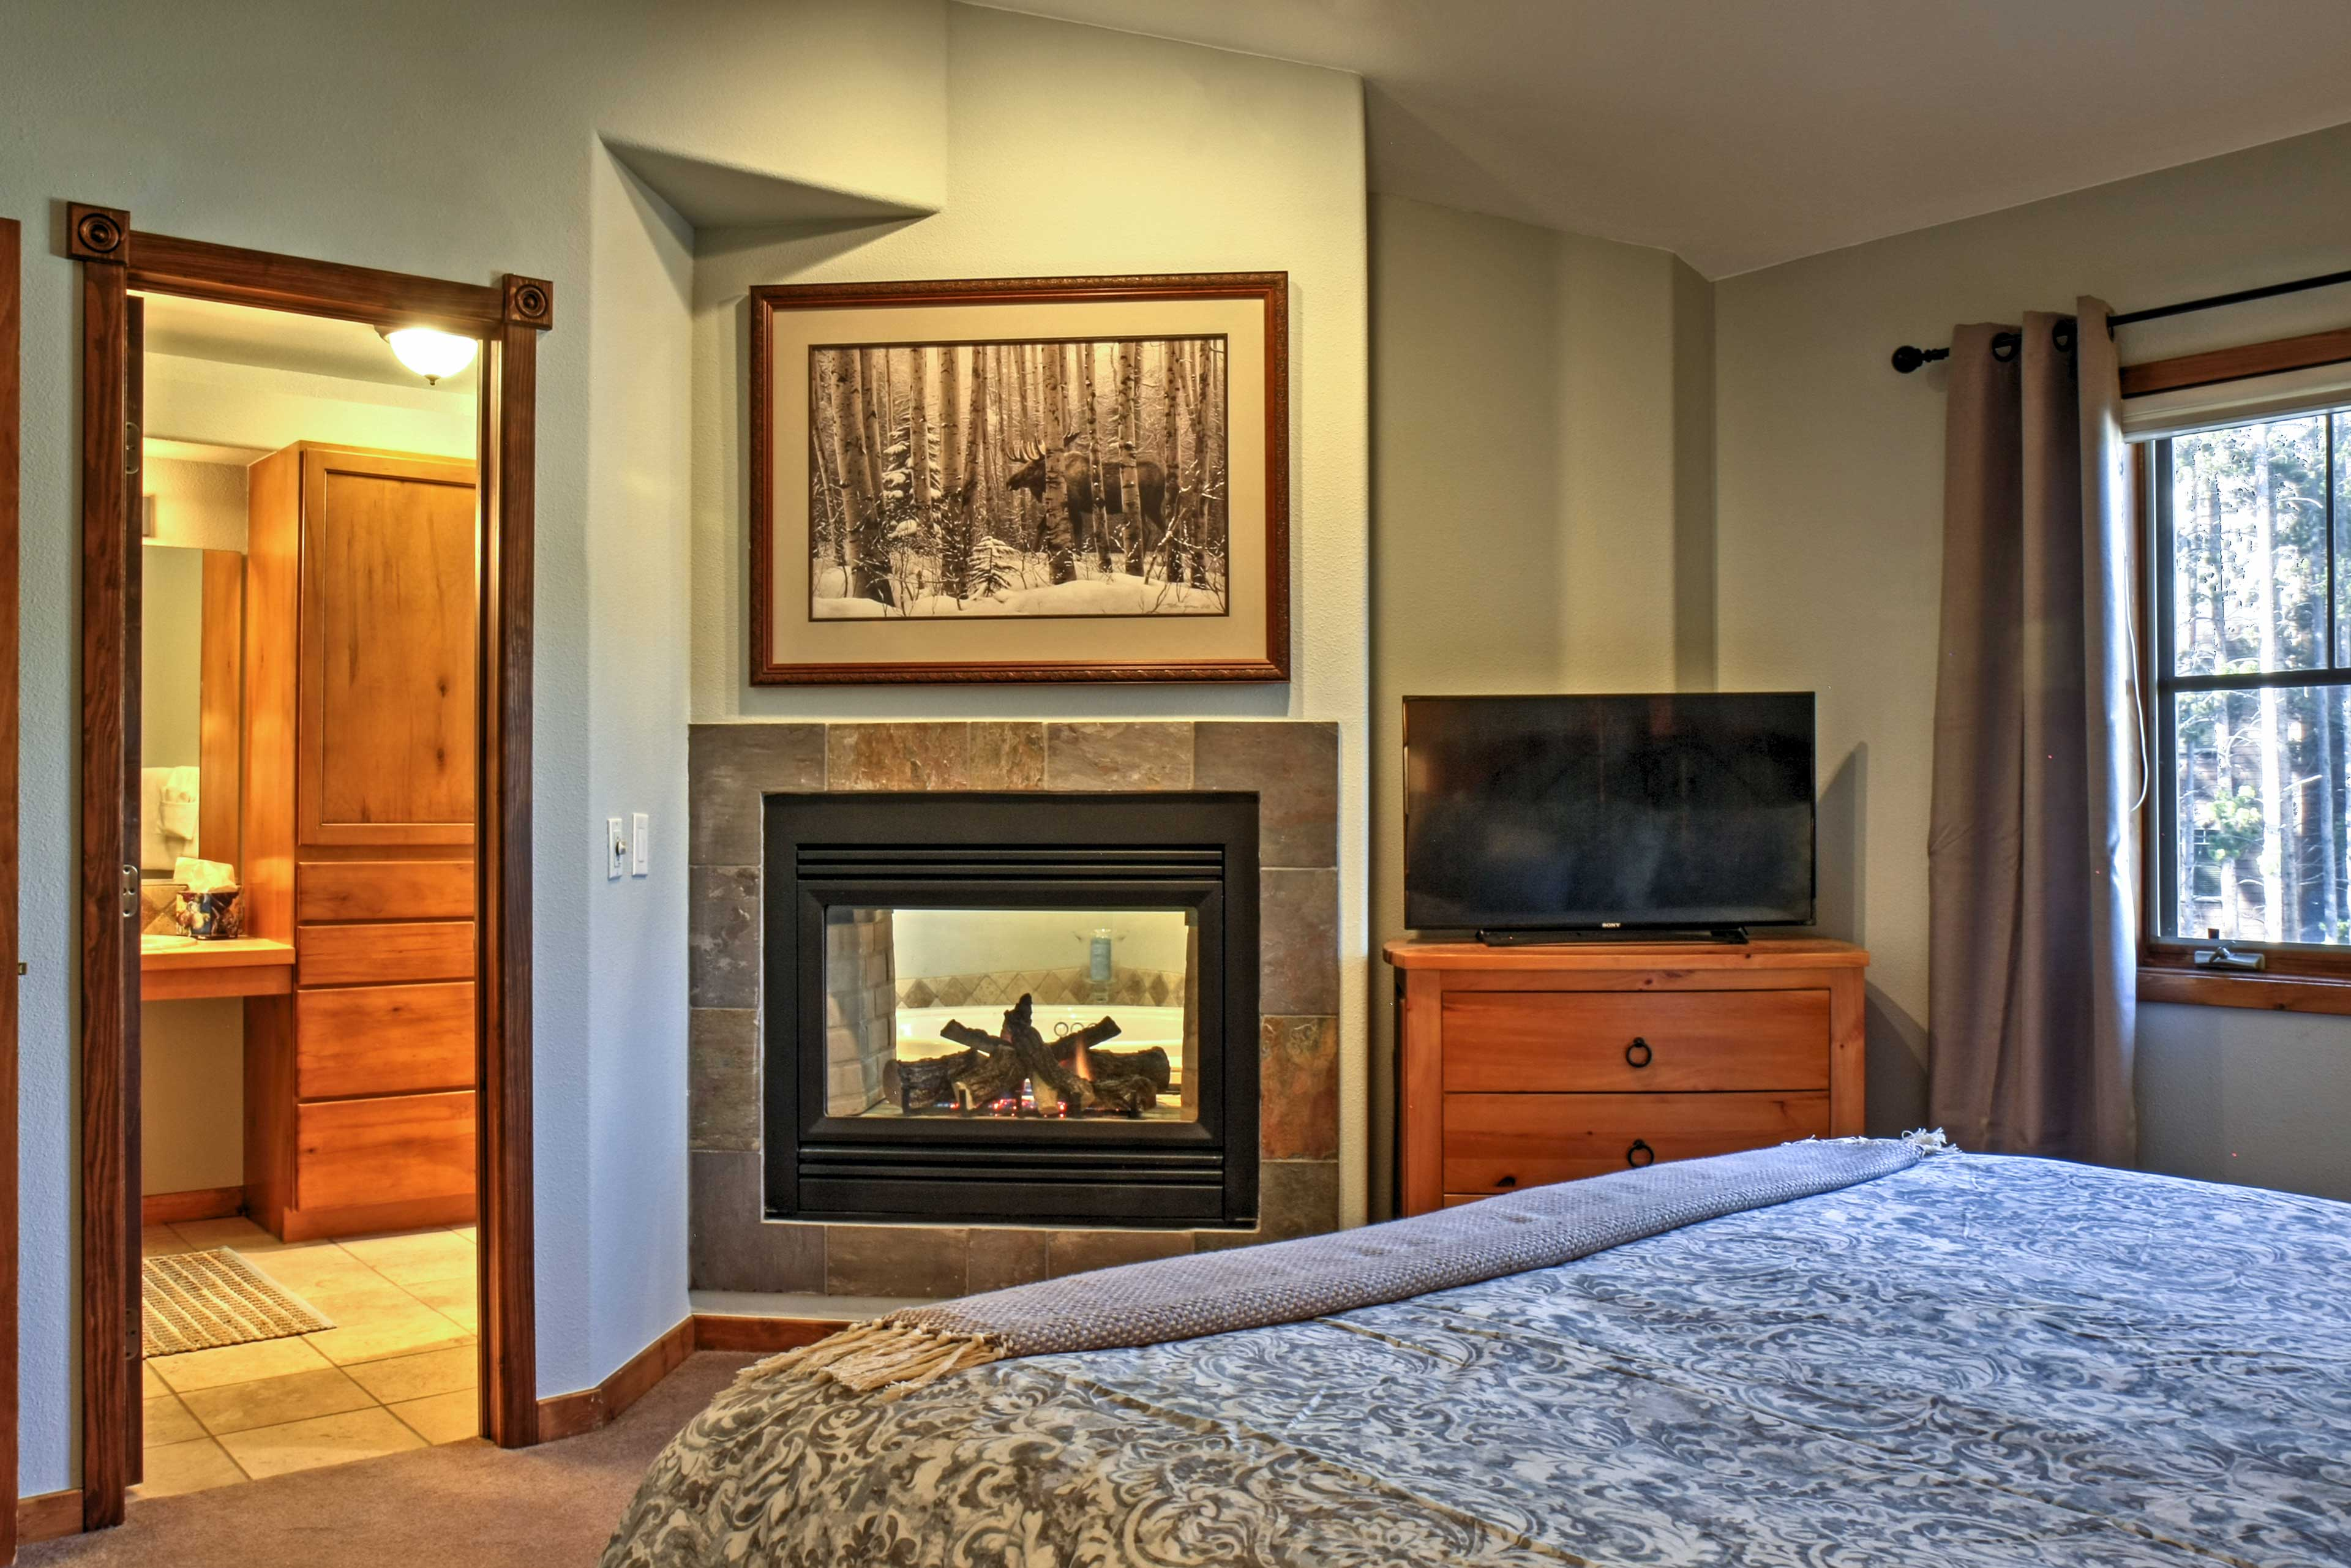 Turn on the flat-screen cable TV while the gas fireplace warms the room.